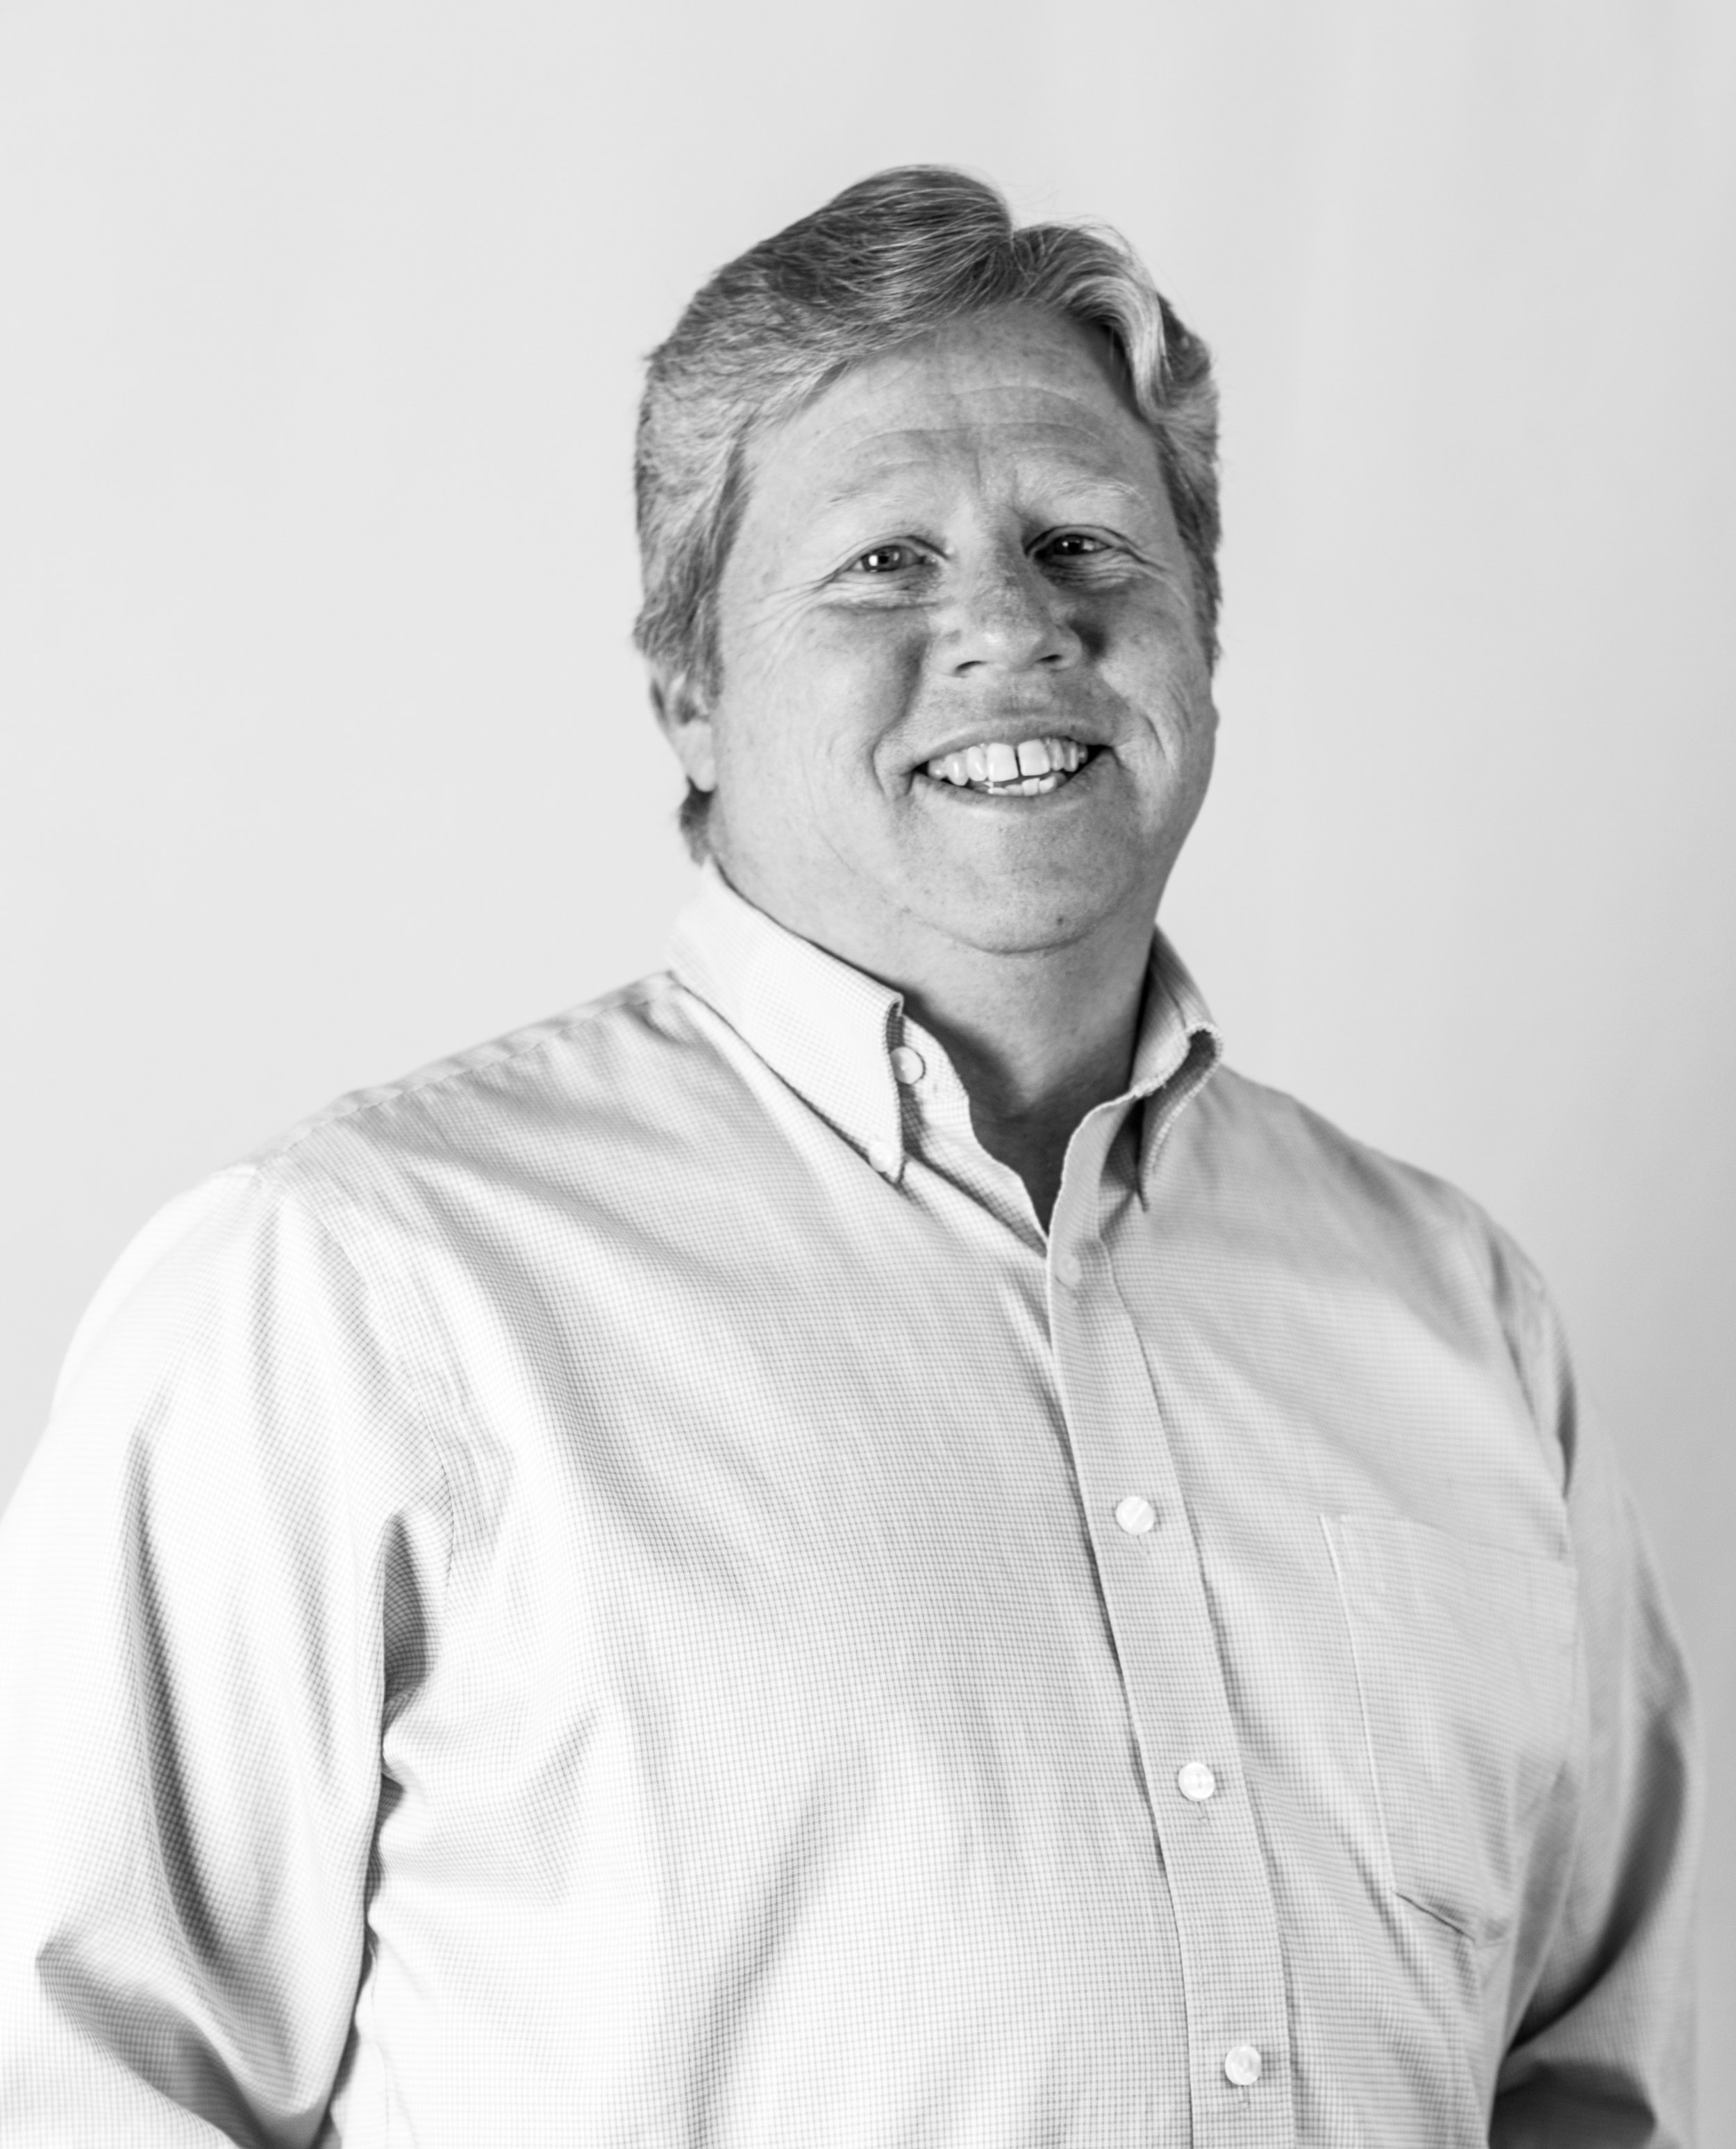 NORM YOUNG, LEED AP / PROJECT MANAGER   Norm is a Utah local, born & raised. He enjoys all aspects of the building process which makes him cognizant of the overall parameters of a project. When he is not using his free time to build a house for his son, Norm likes biking, snowboarding, & going on dates with his wife.